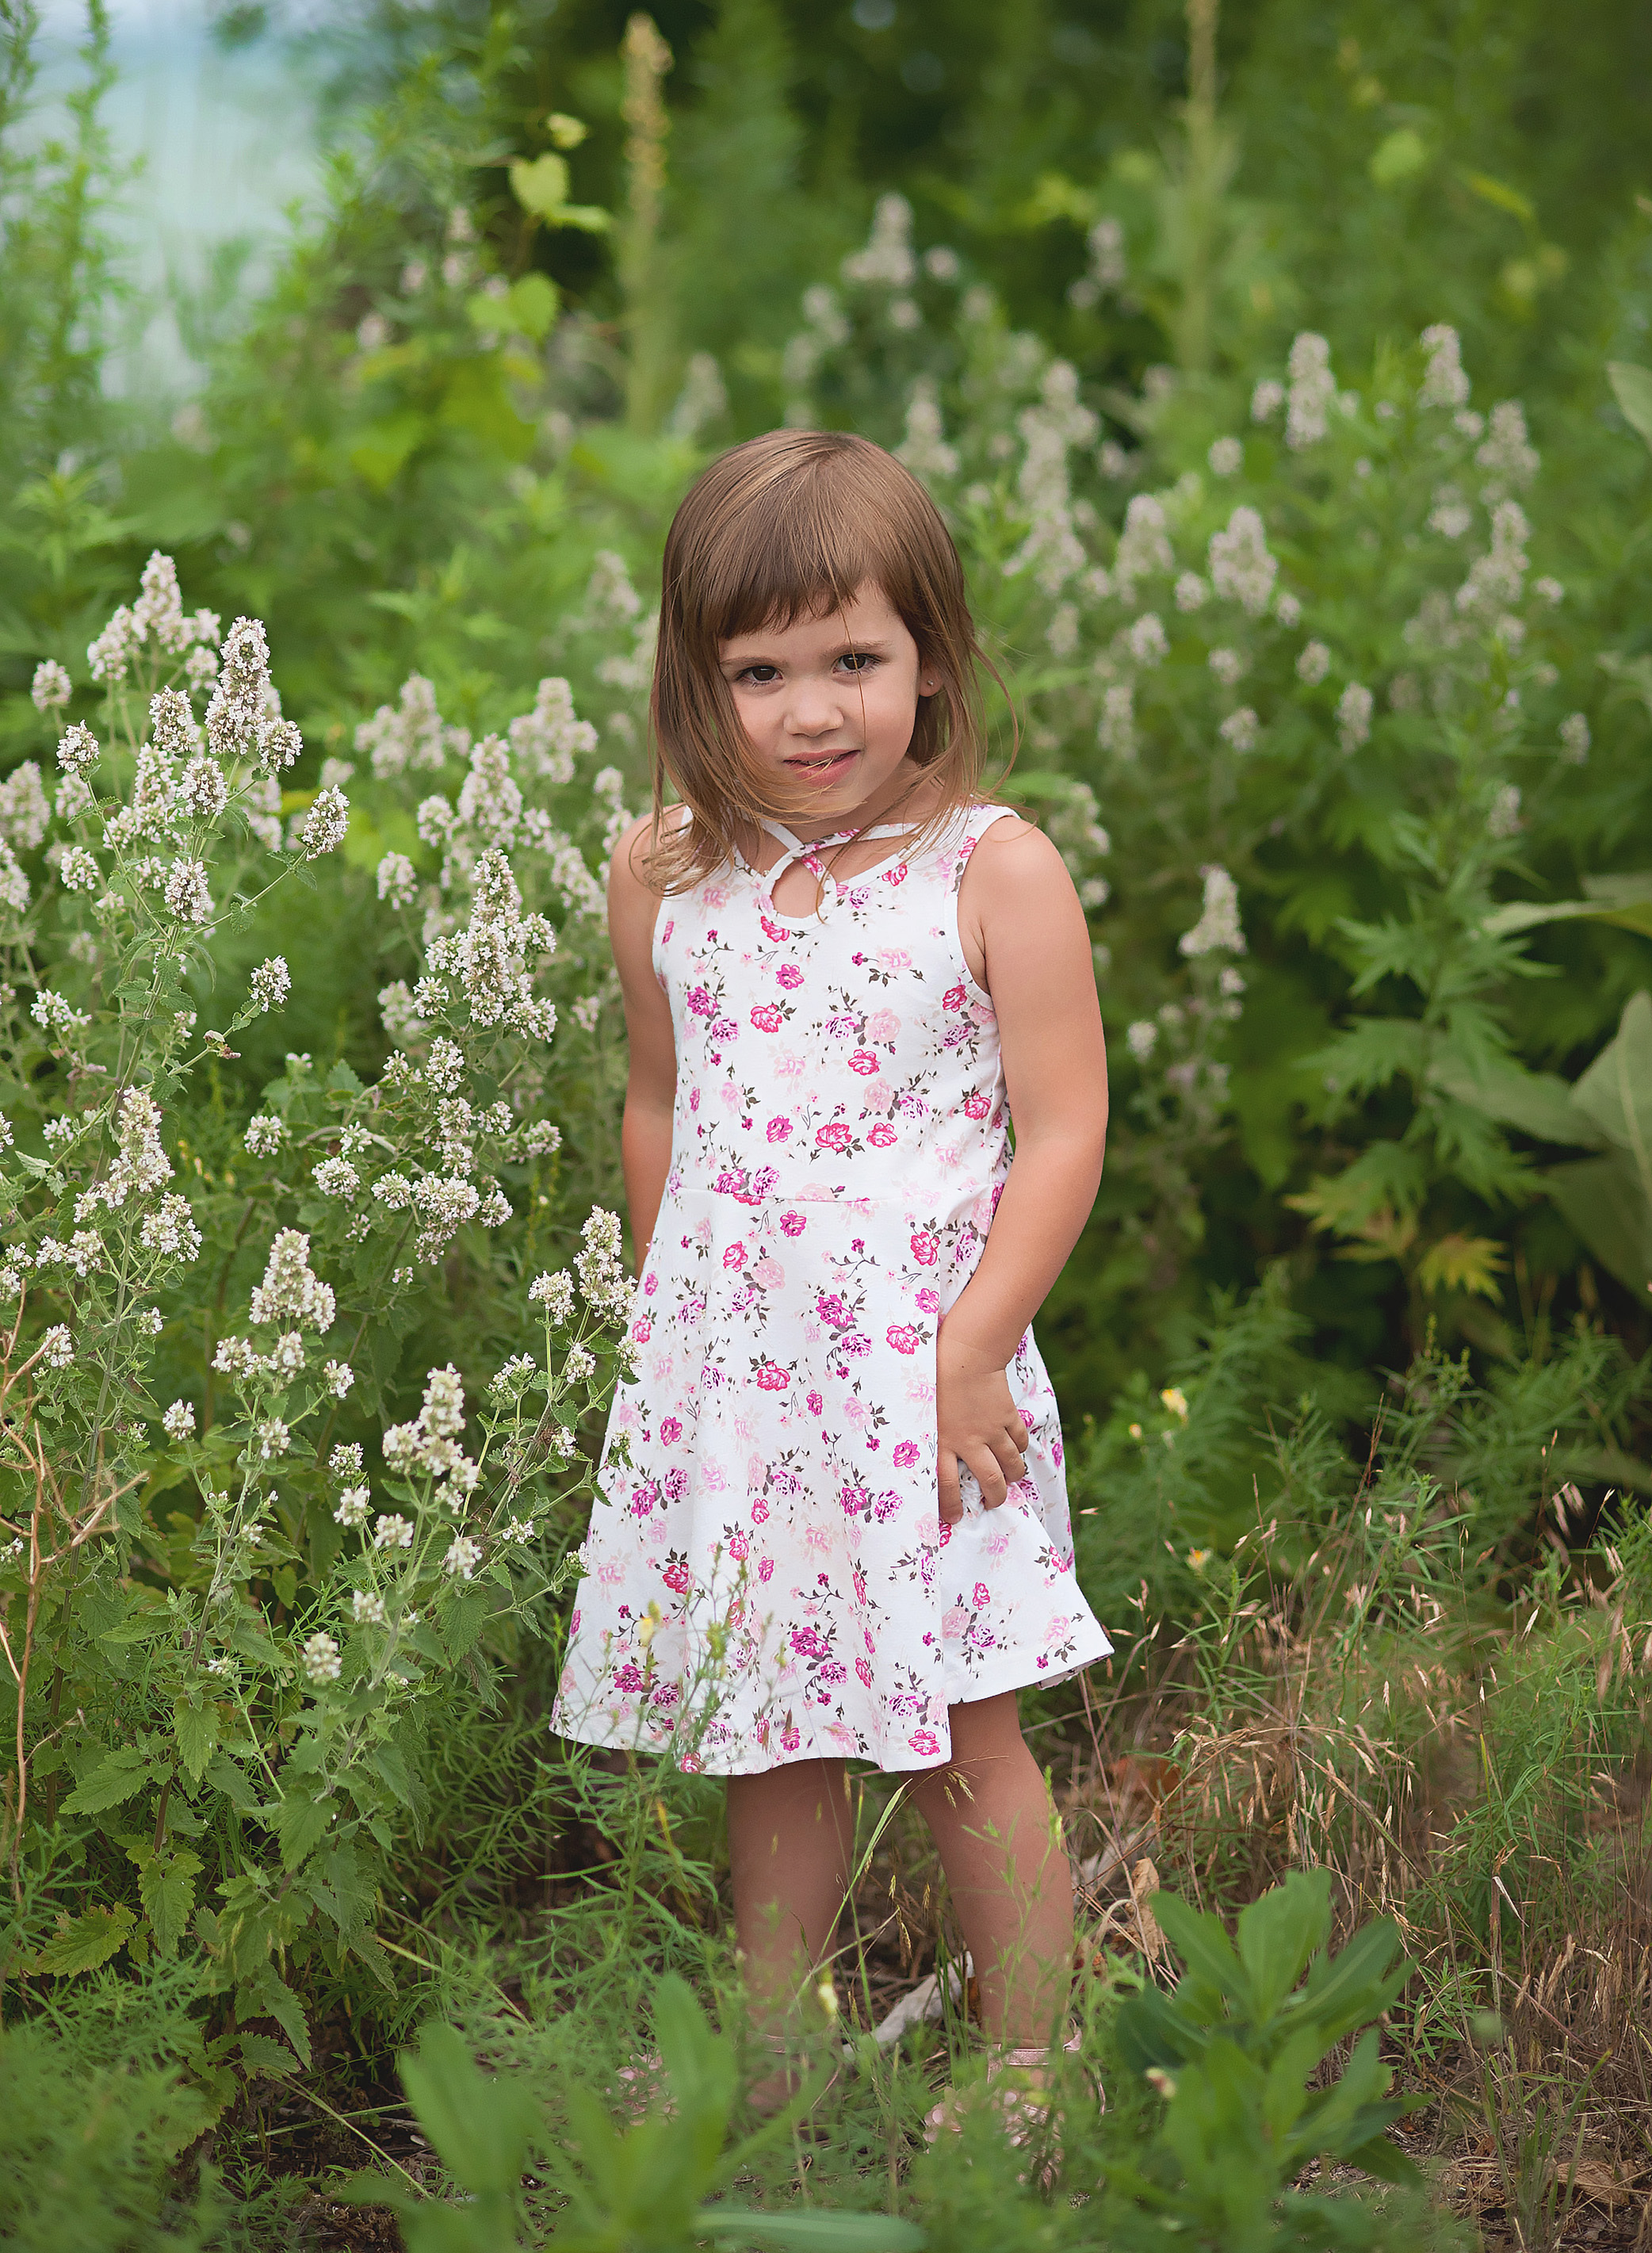 little girl standing in a field